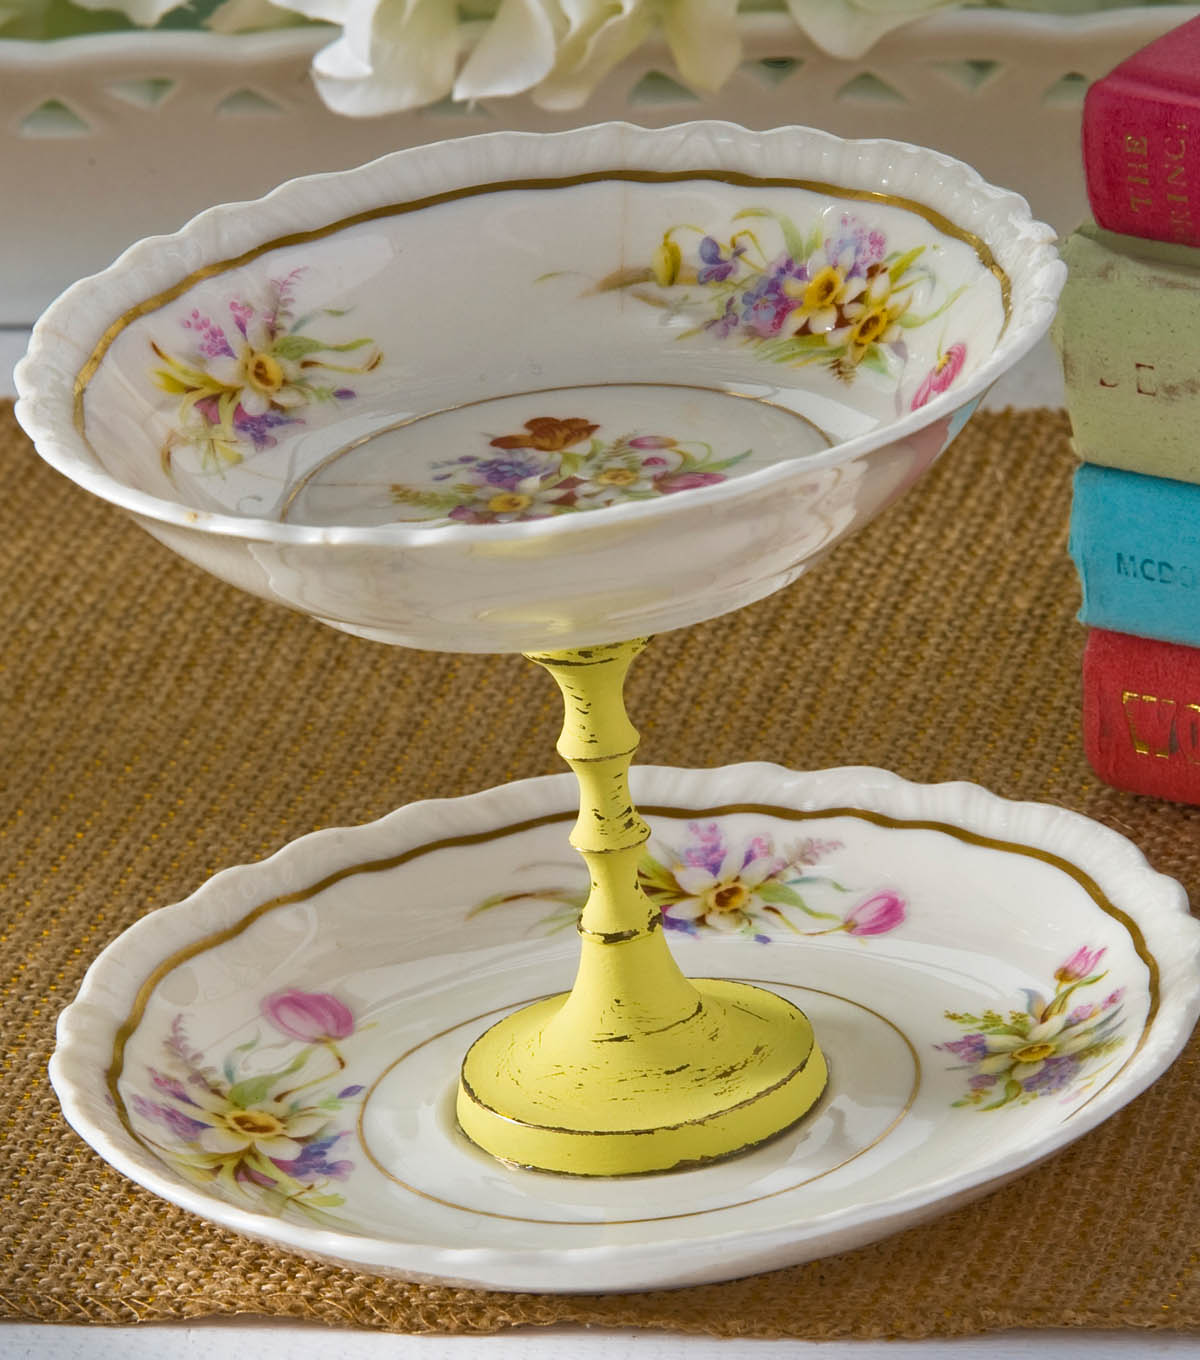 Tiered Serving Dish